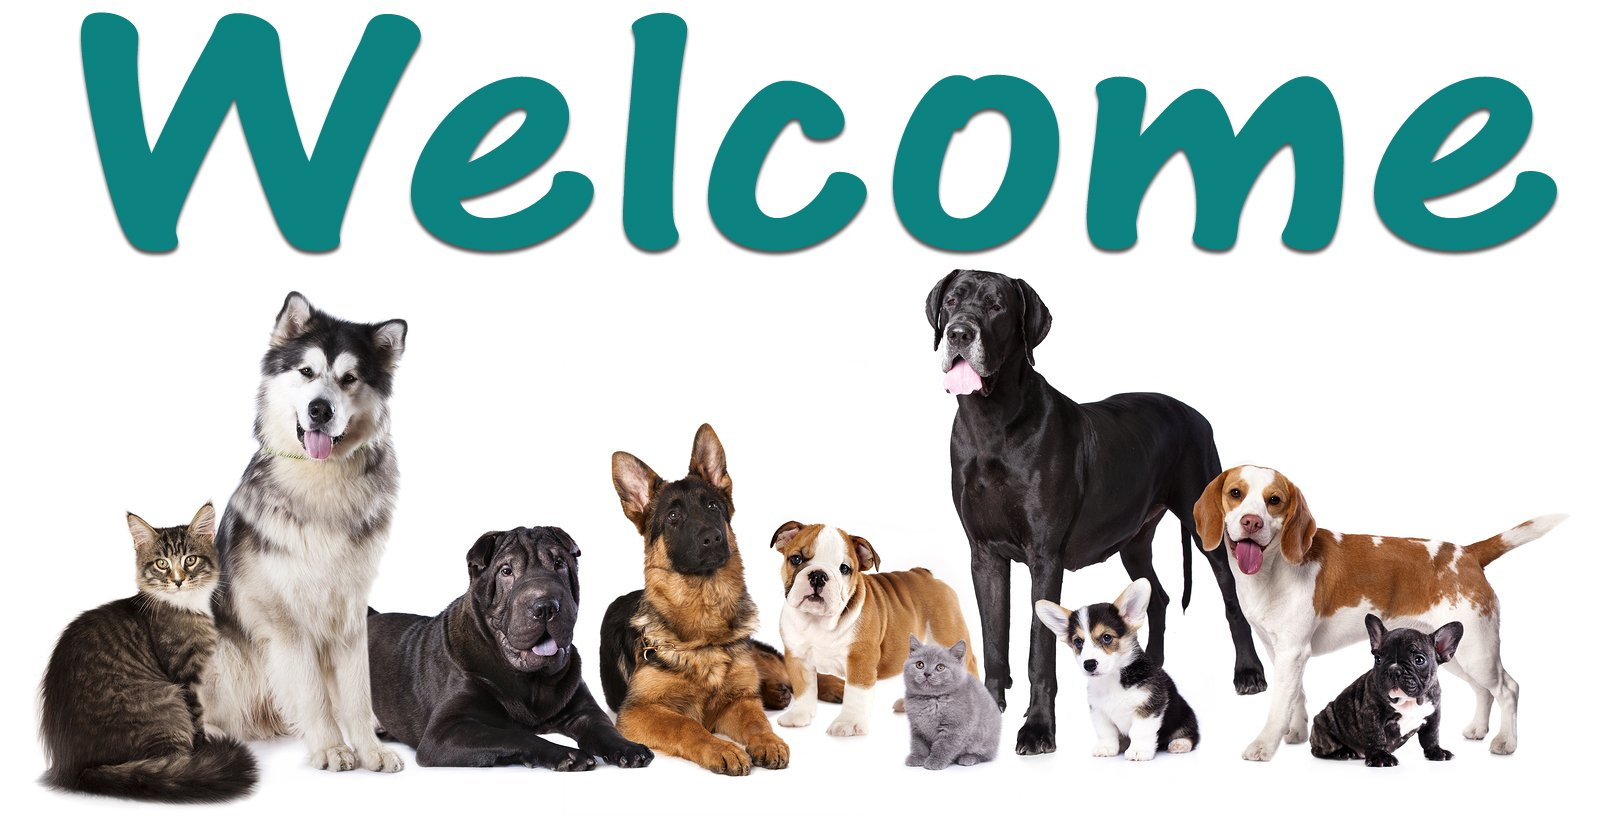 Dogs, Puppy, puppies, Cats, Kittens, Pets, Small Pets, Pet Care, Large Animal Care, Small Animal Care